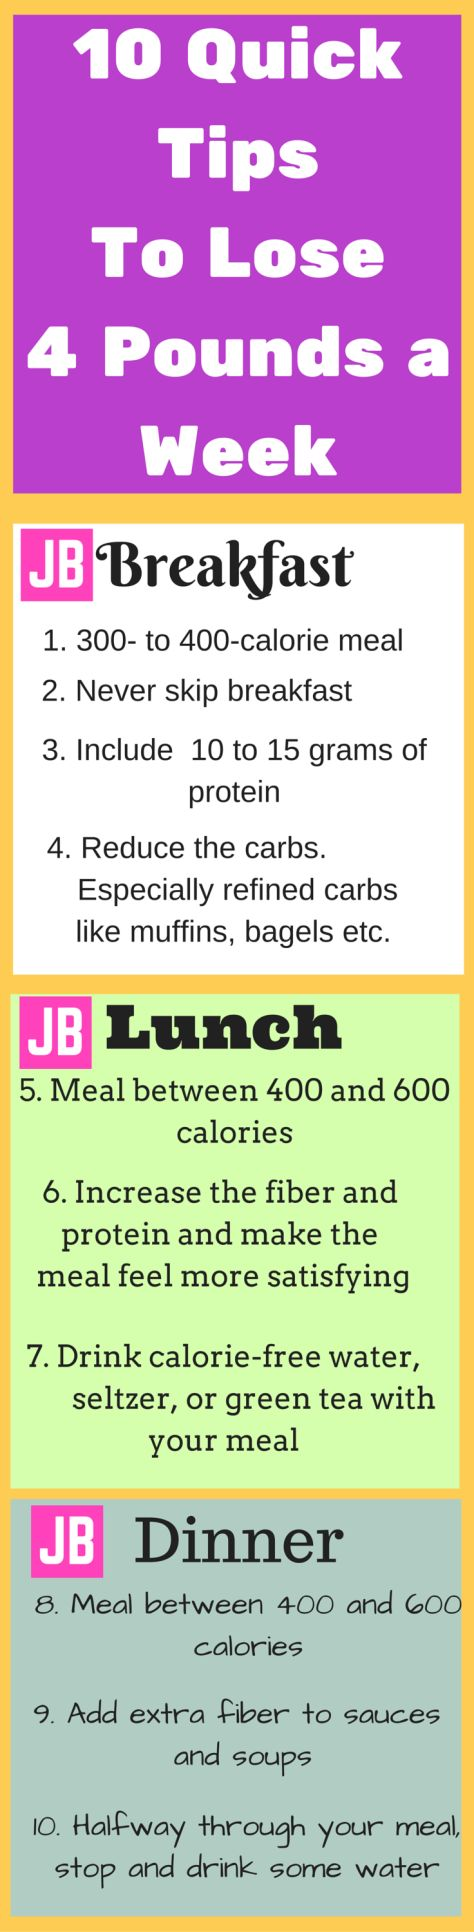 15 Quick Tips To Lose 4 Pounds a Week